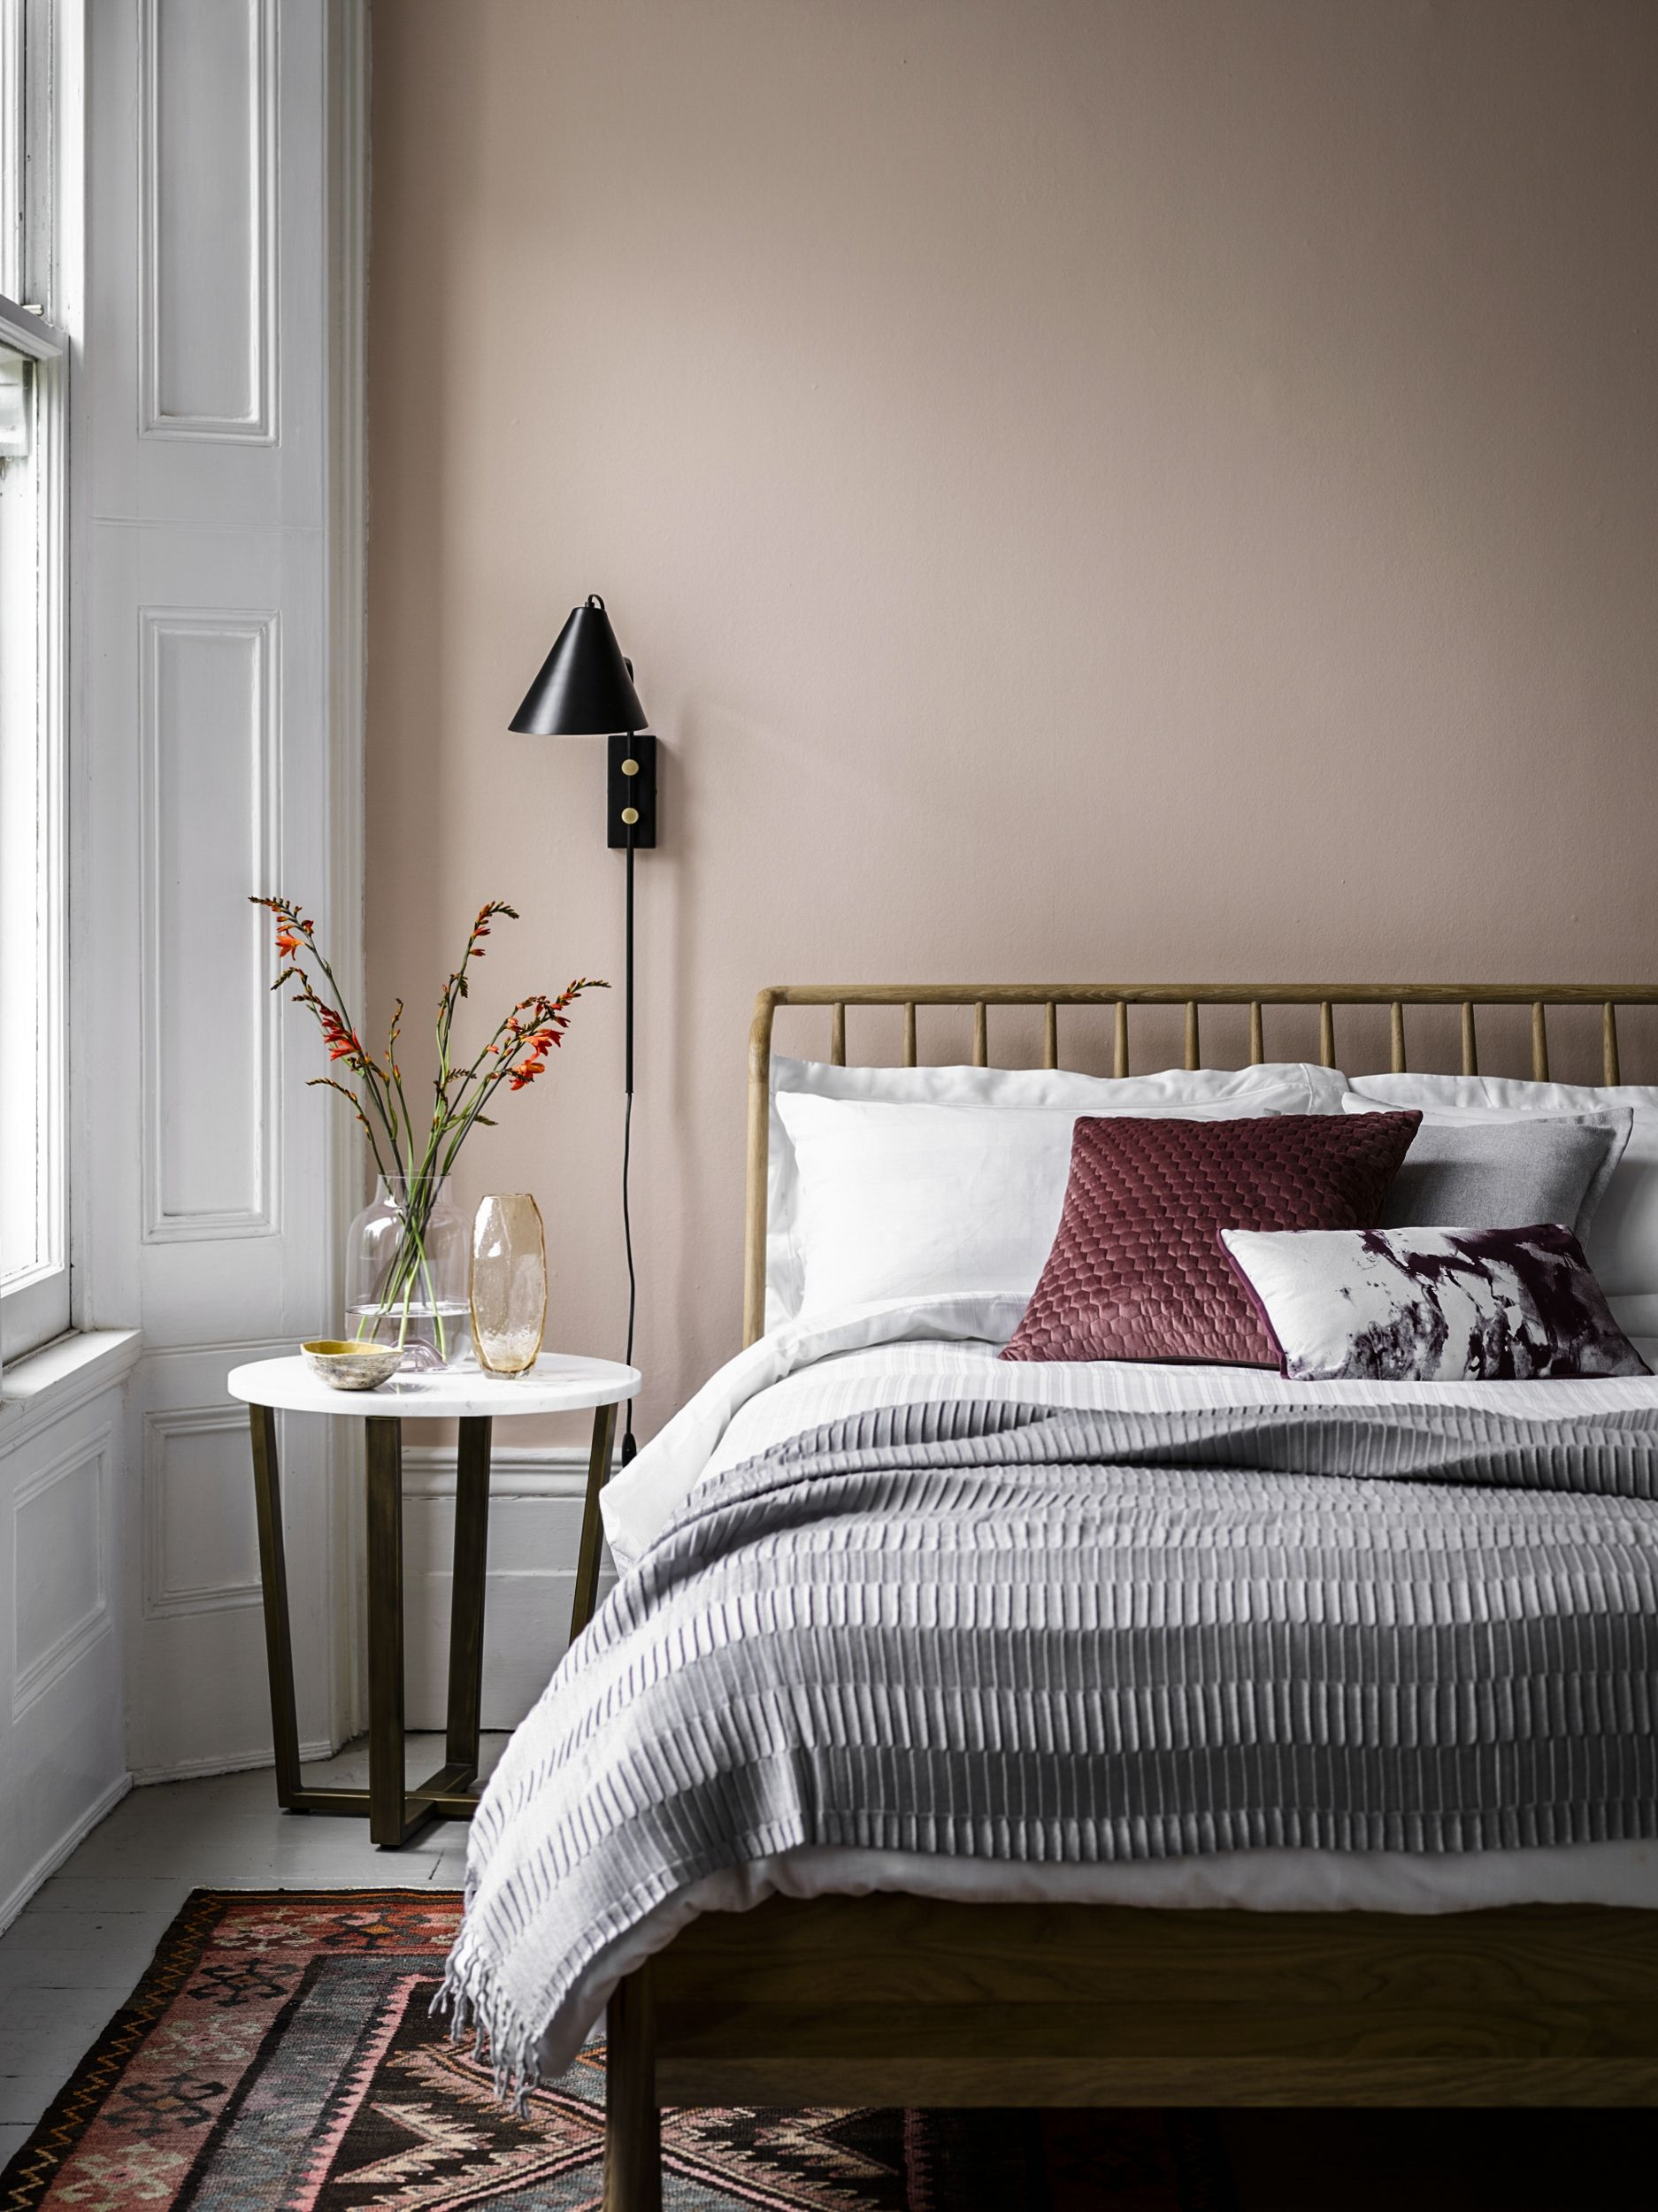 #Bedside #Table #Lamps Are An